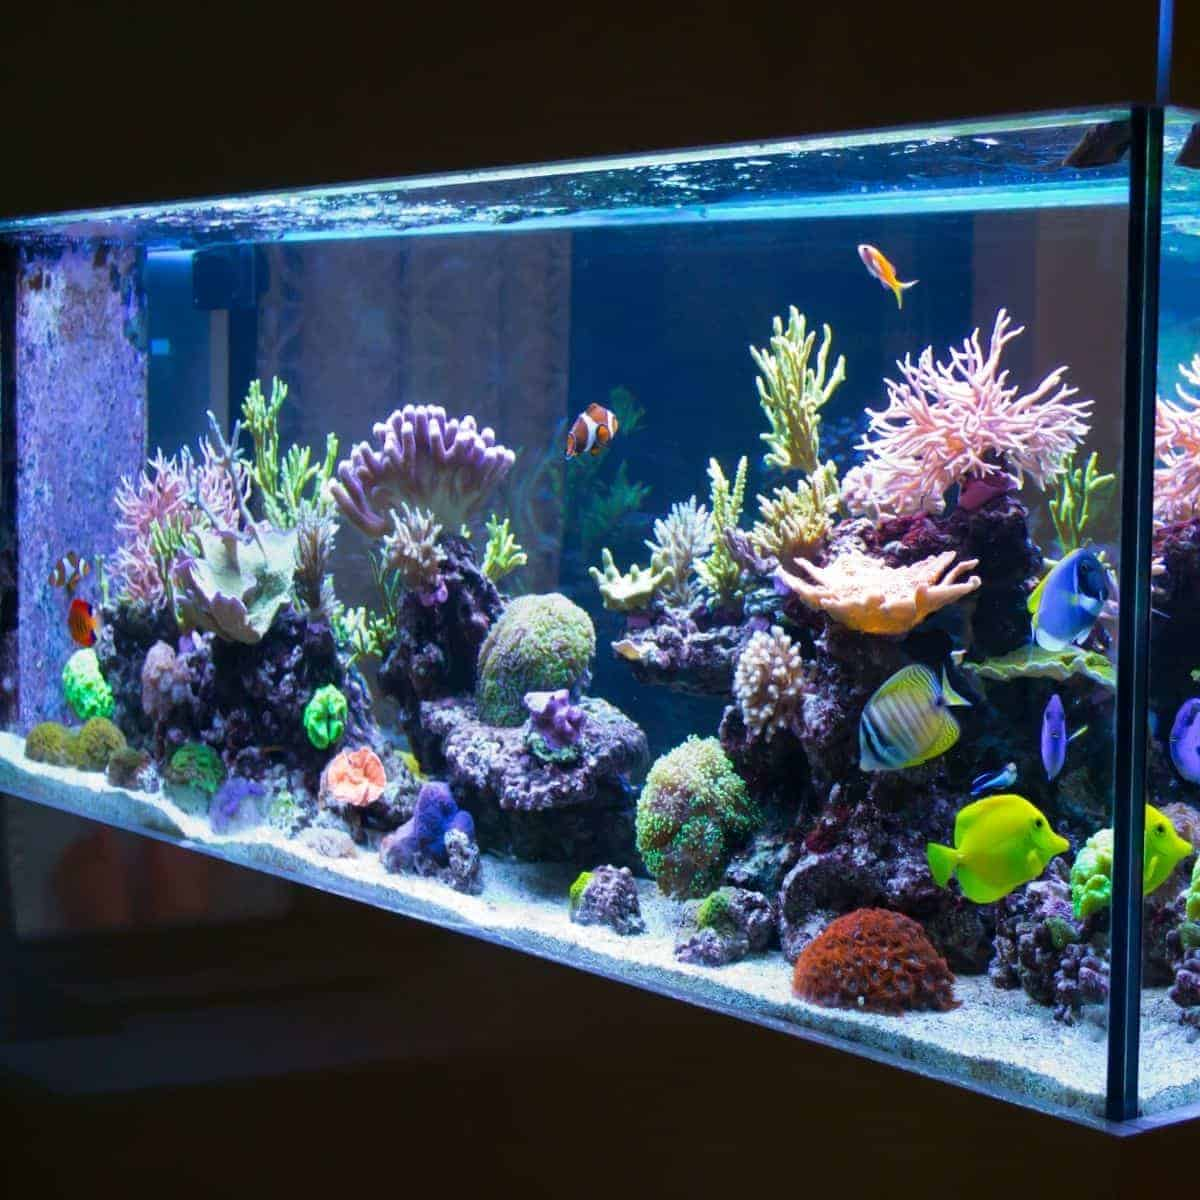 Large fish tank in a dark room.